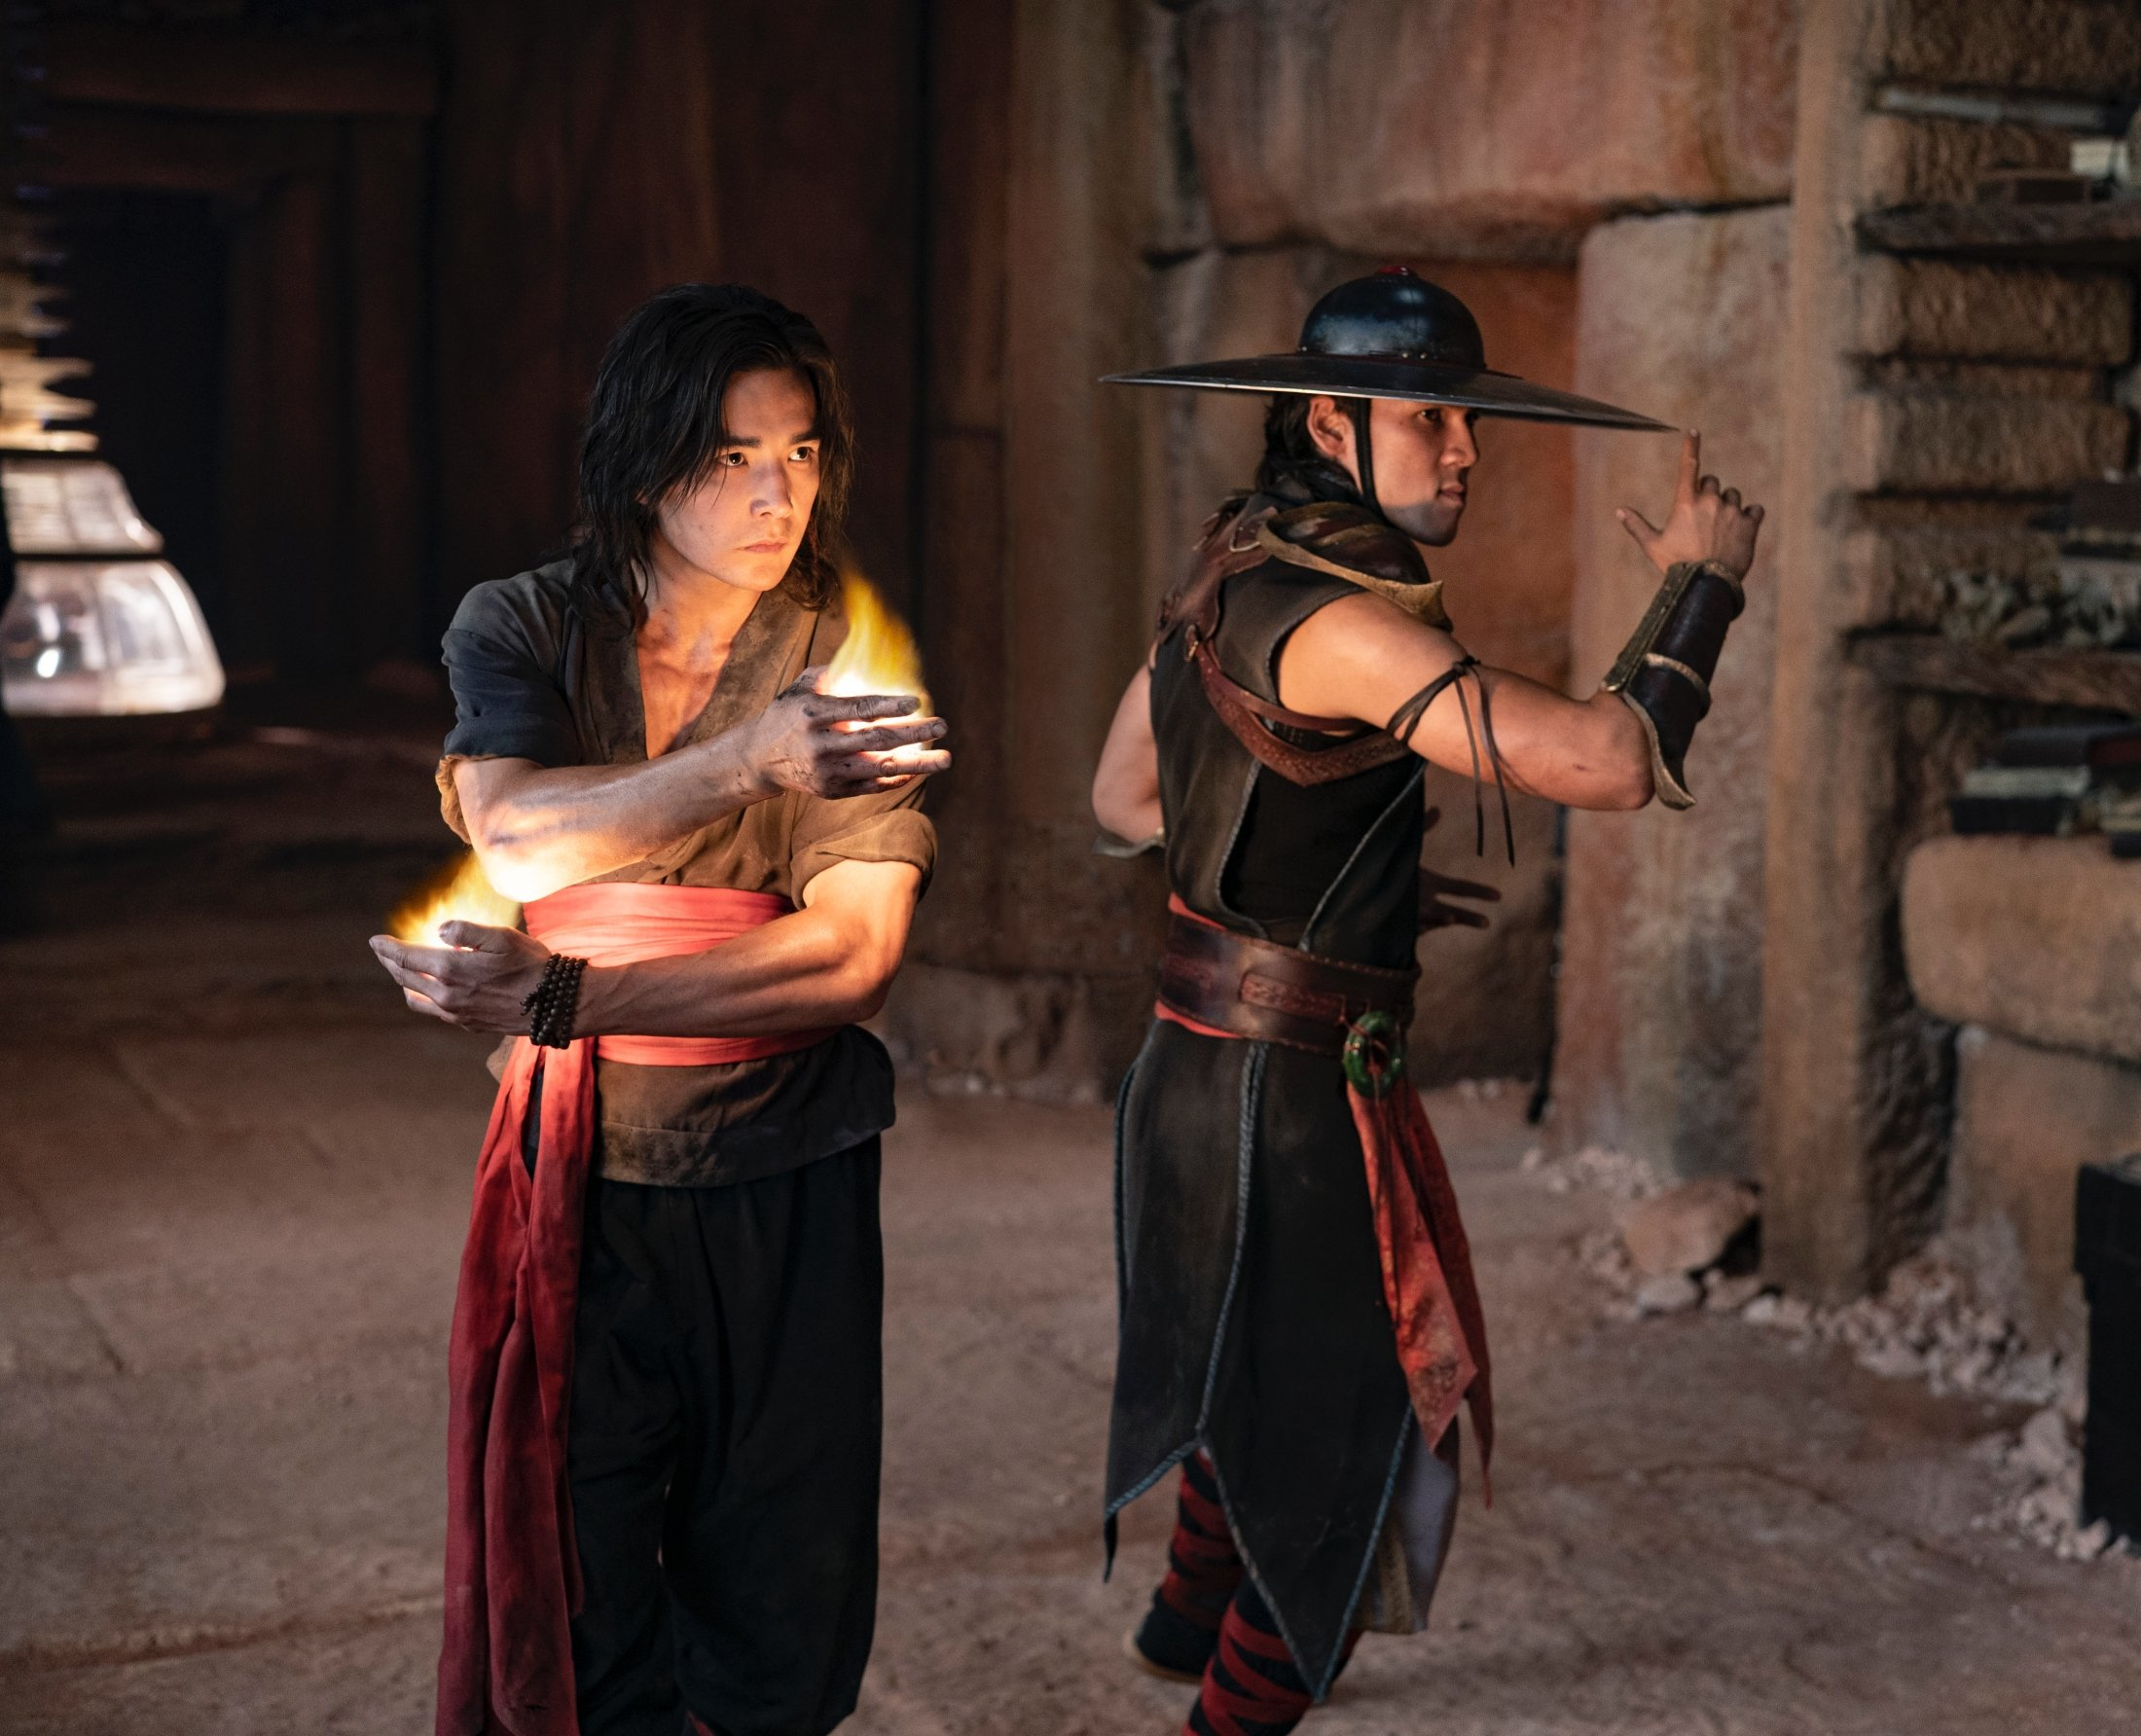 """Ludi Lin (L) playing """"Liu Kang,"""" and Max Huang portraying """"Kung Lao"""" stand back-to-back in a scene from 'Mortal Kombat.' (Warner Bros. Pictures via AP)"""